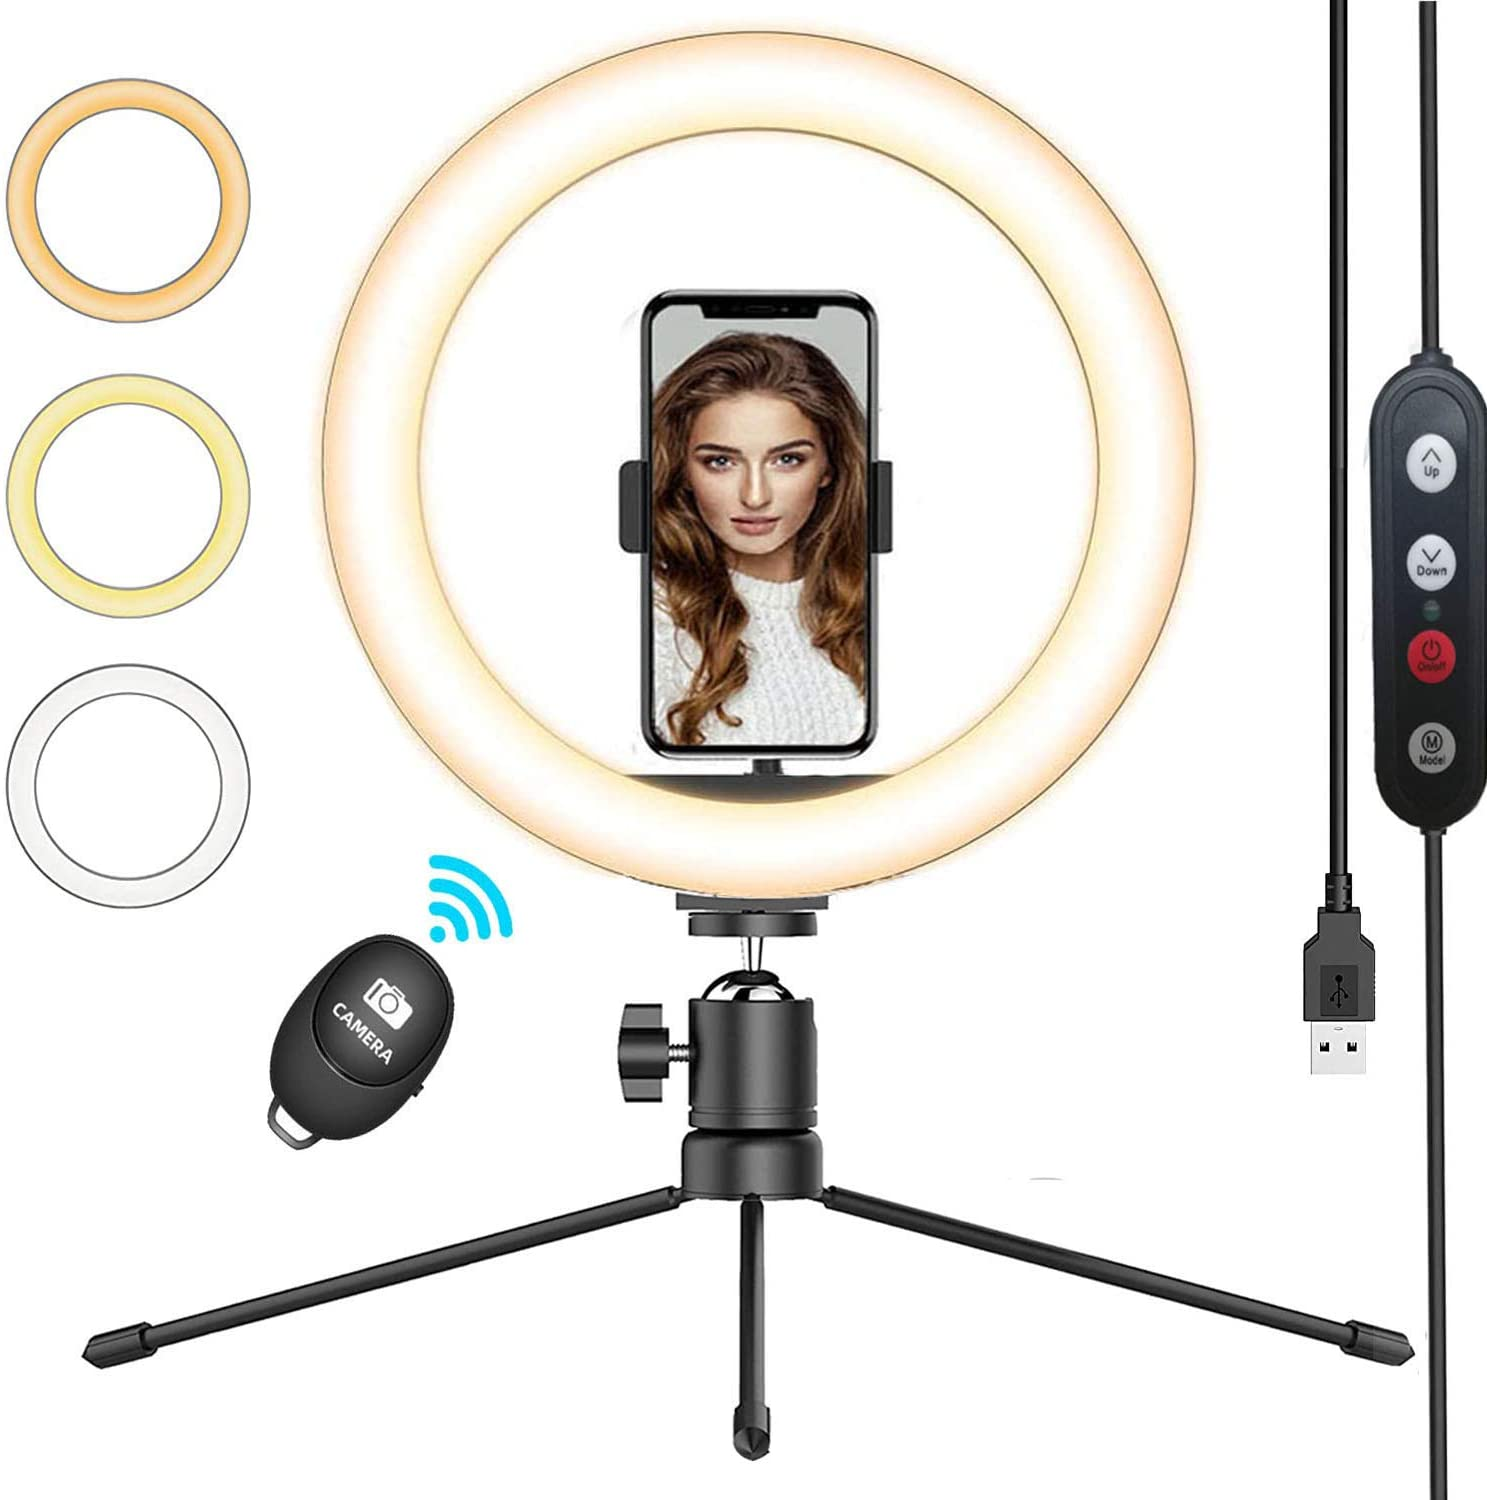 QI-EU 10.2-Inch Ring Light